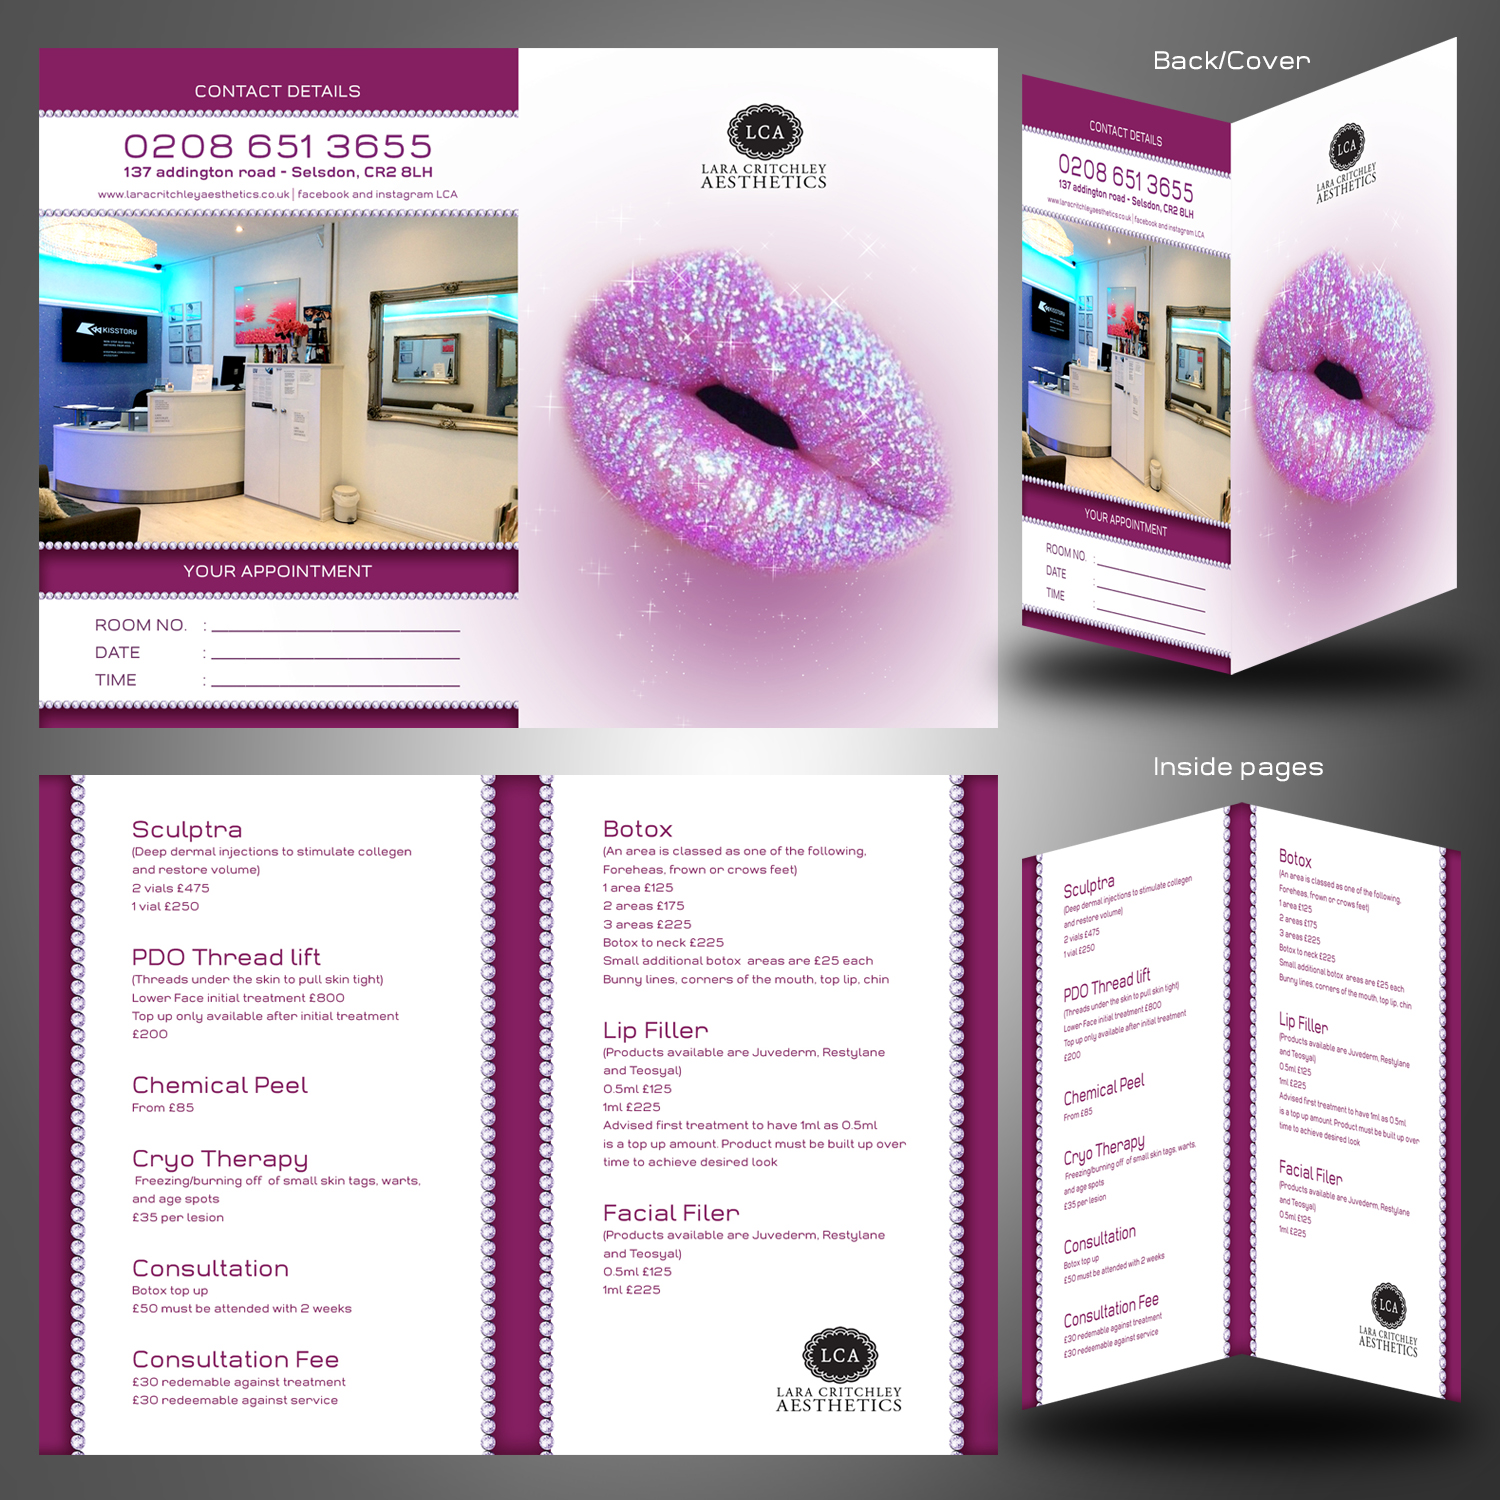 Small 4 page folding business card/price list for botox and lip